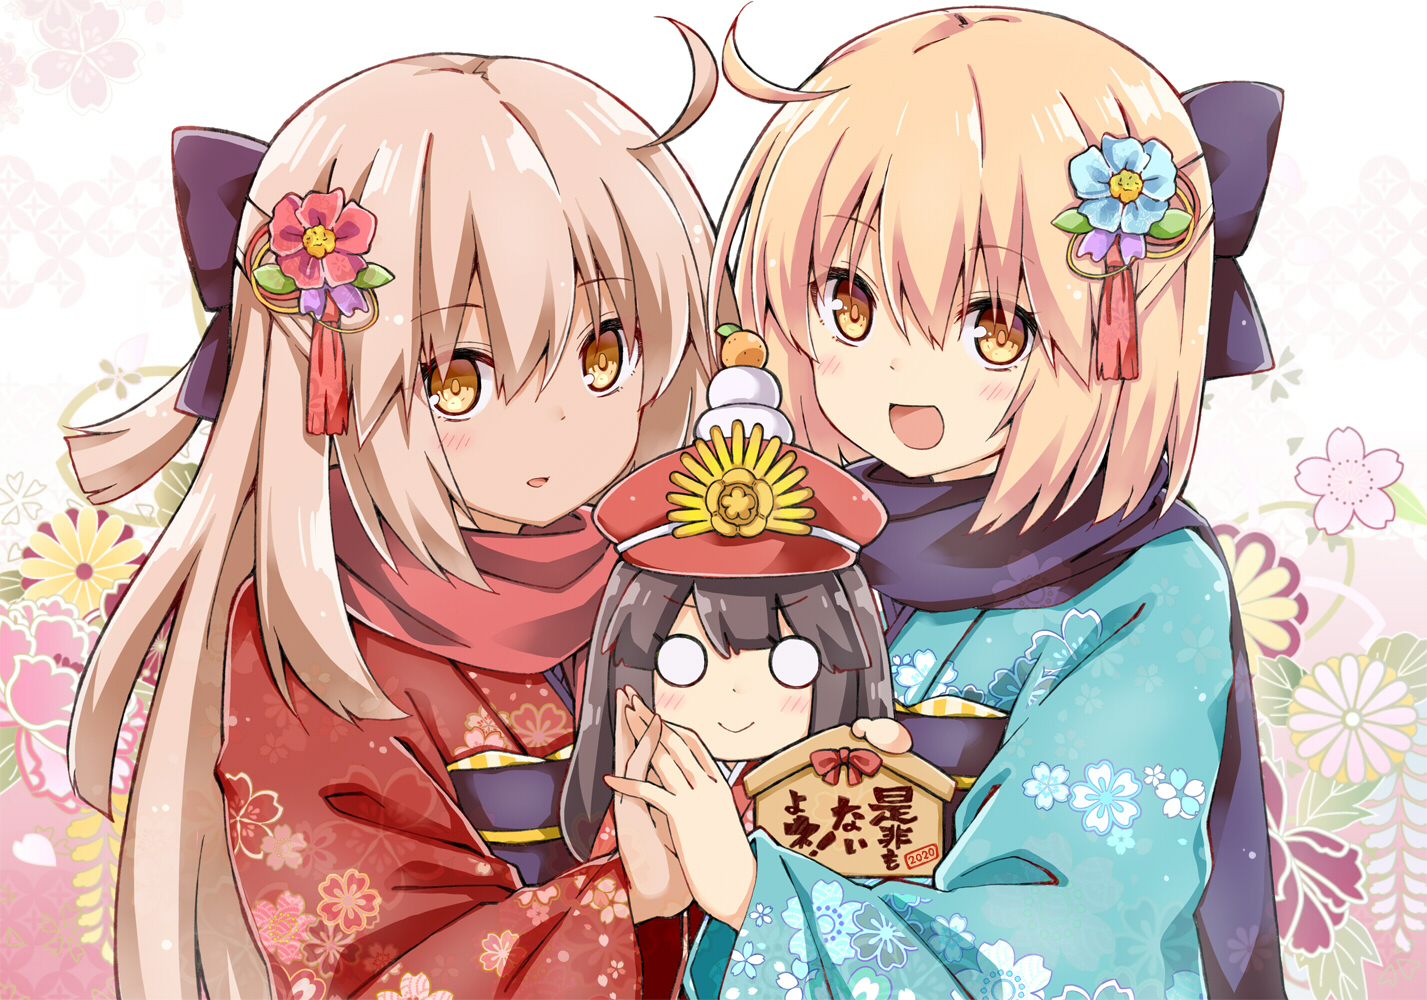 2girls blonde_hair brown_eyes brown_hair fate/grand_order fate_(series) flowers japanese_clothes long_hair nobunaga_oda_(fate) okita_souji_alter okita_souji_(fate) rioshi short_hair